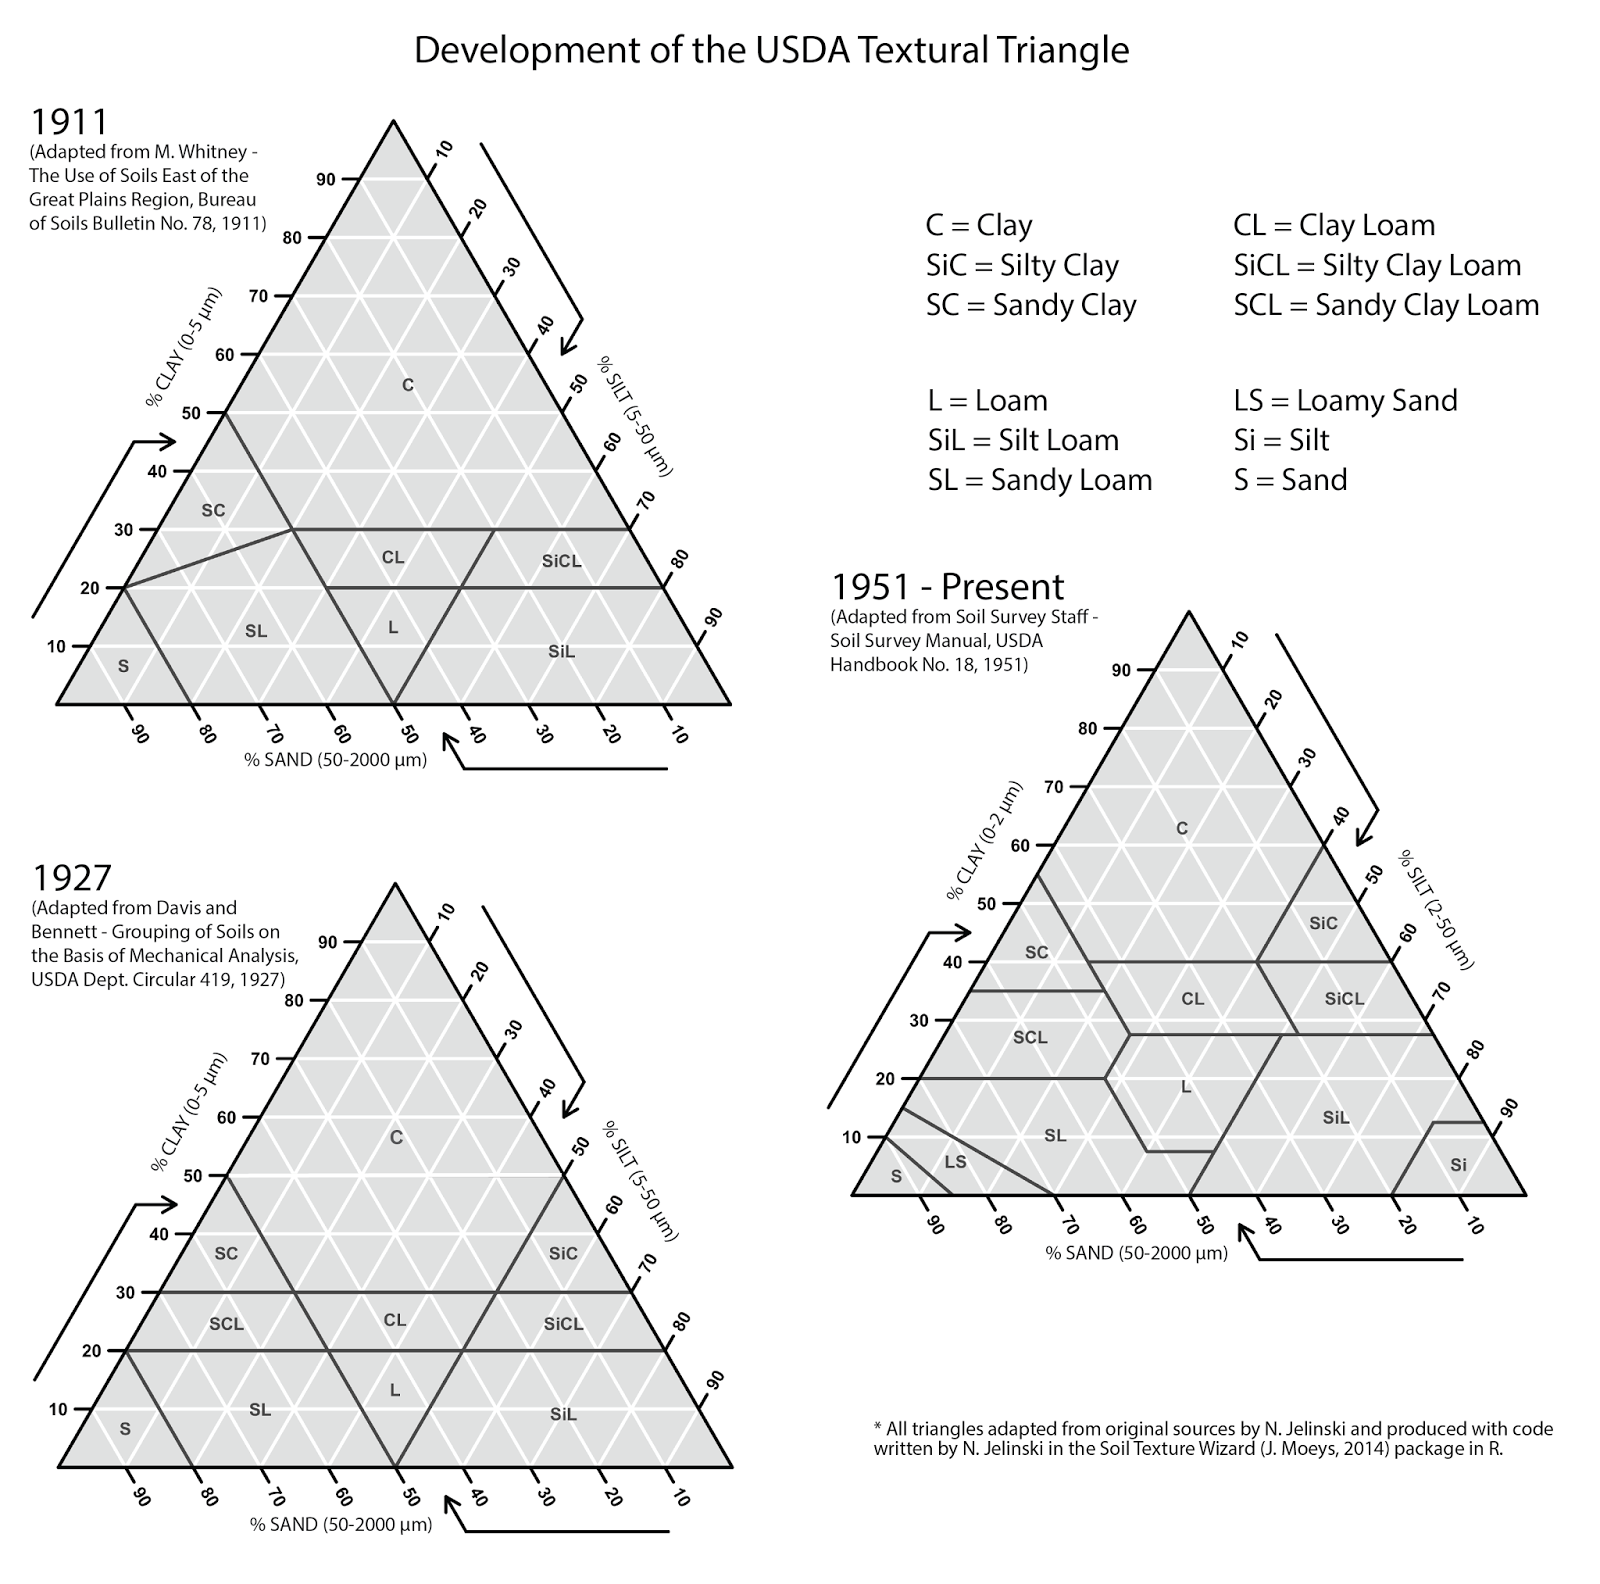 Uncategorized Soil Texture Triangle Worksheet university of minnesota soil judging team the historical usda 1911 1927 1951 textural triangles plotted equilaterally for comparative purposes all adapted from original sources